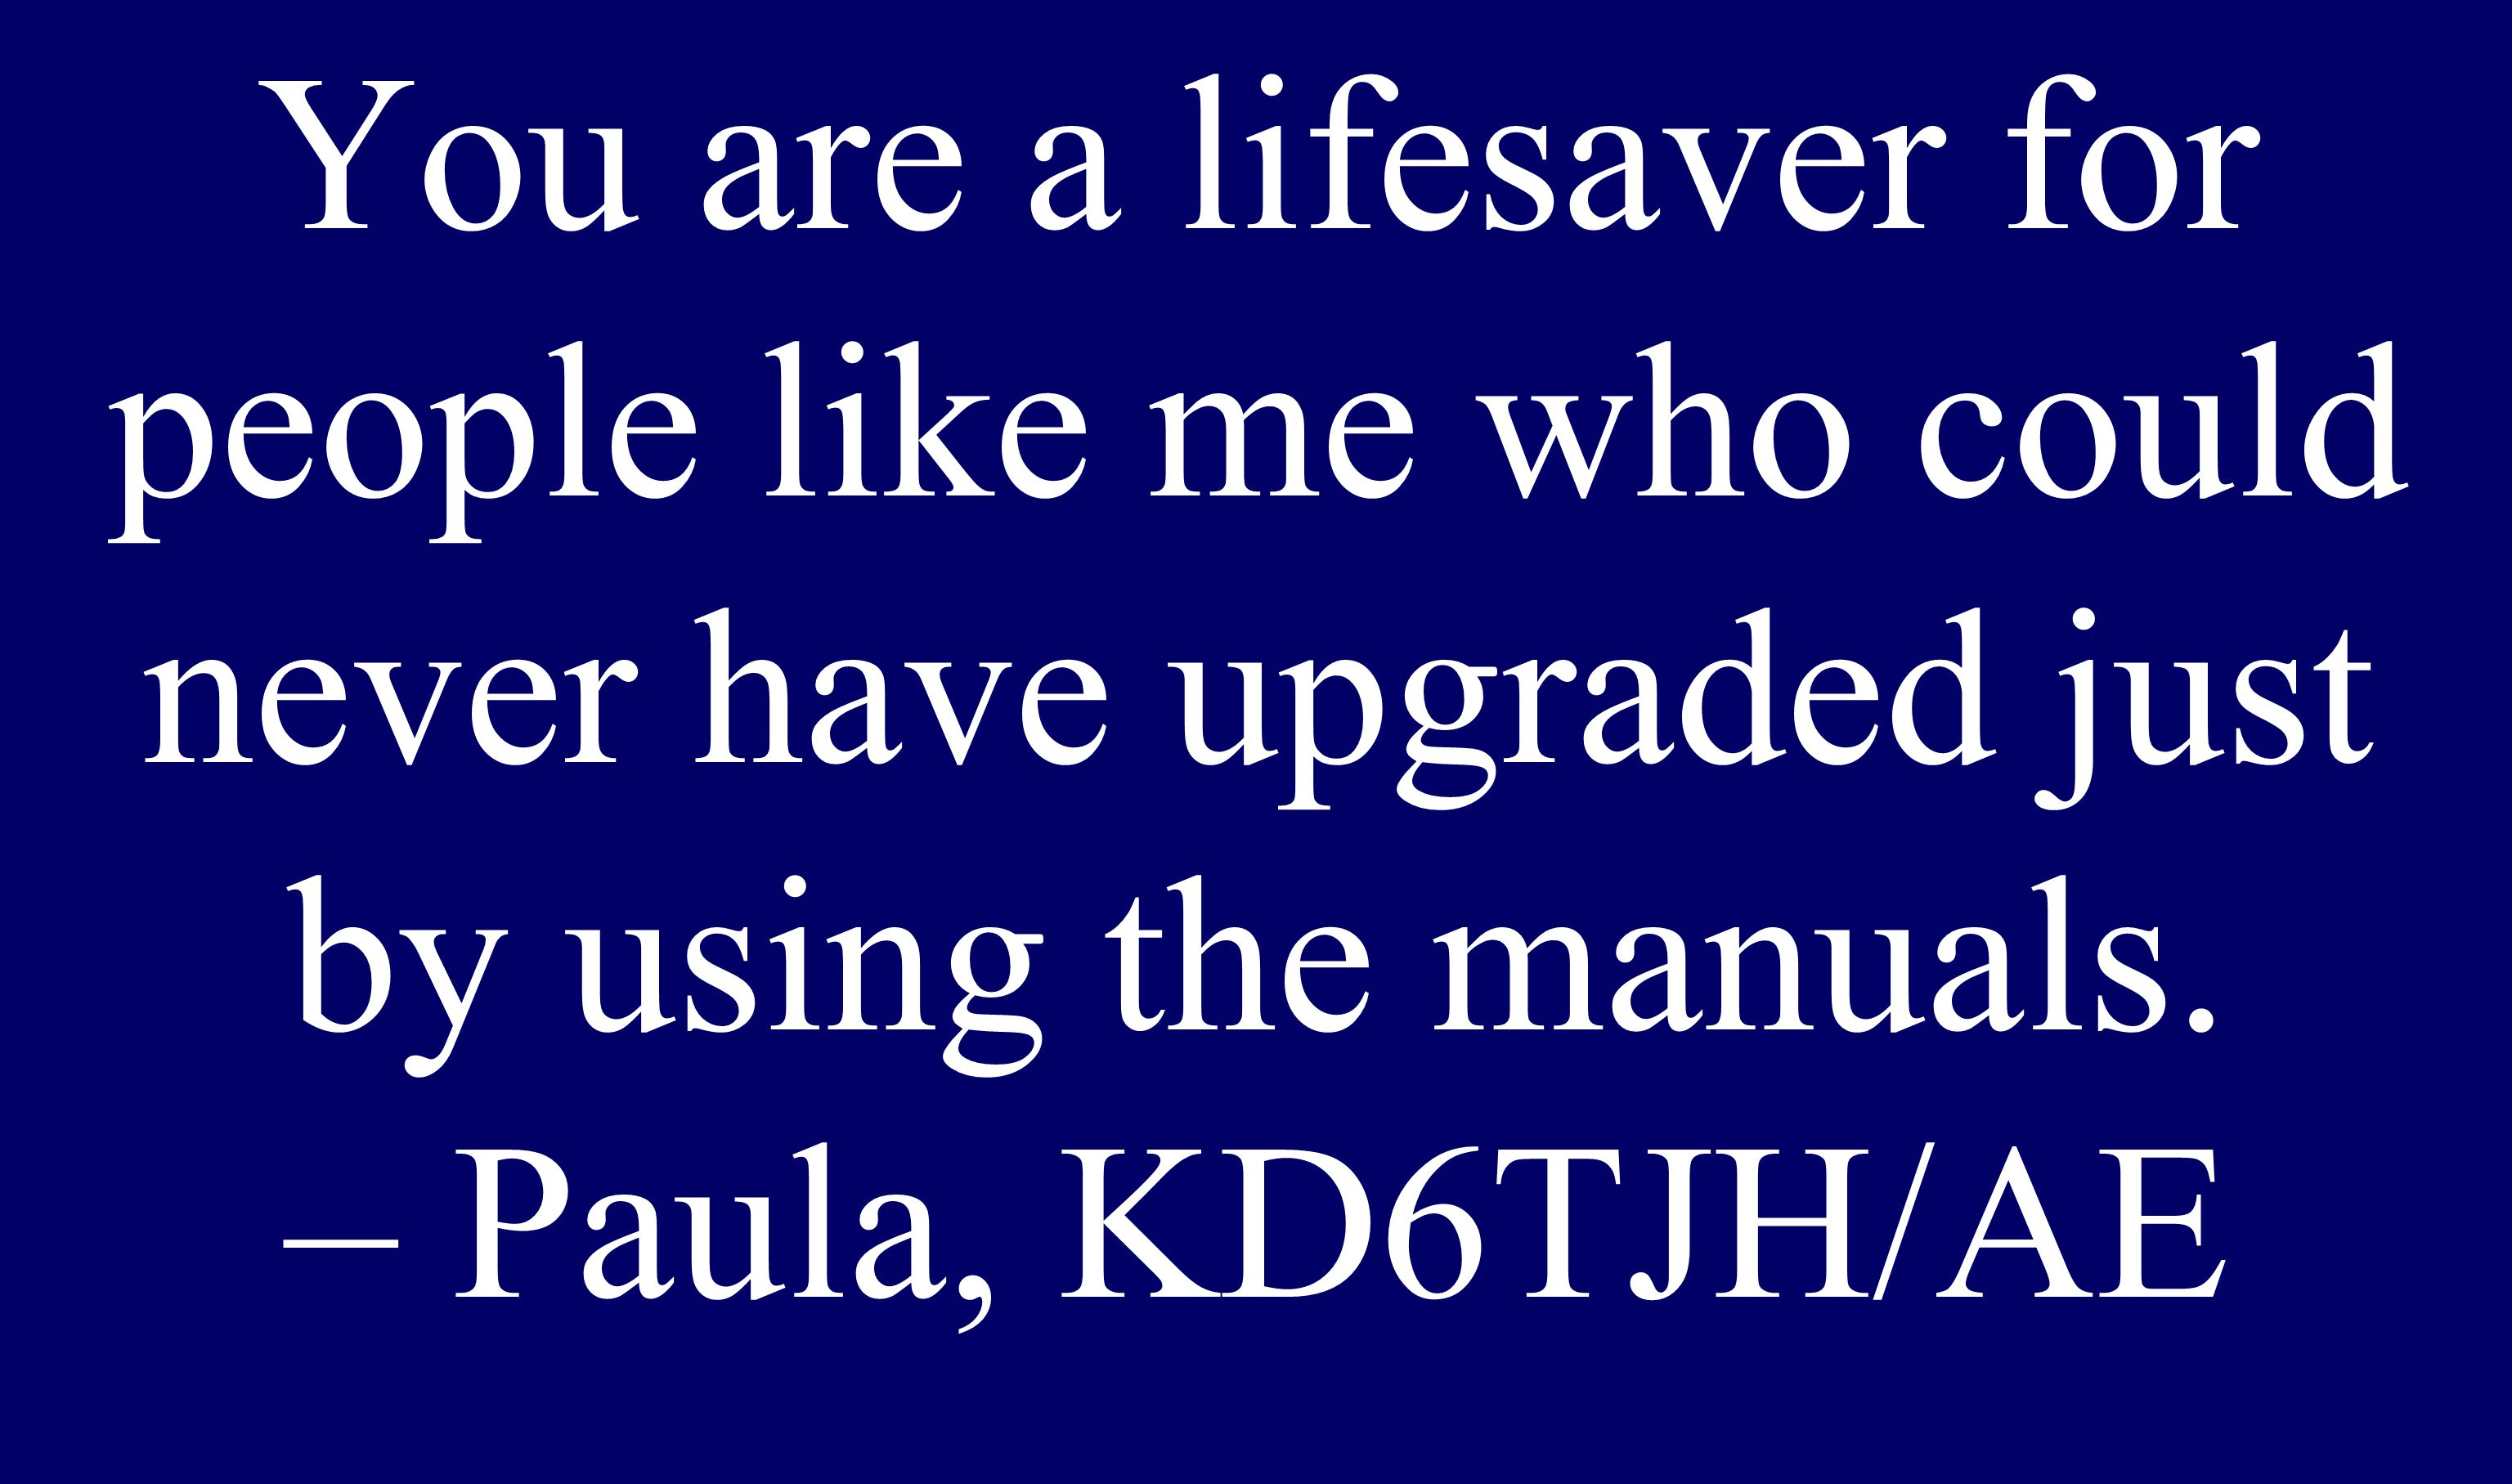 You are a lifesaver for people like me who could never have upgraded just by using the manuals. – Paula, KD6TJH/AE